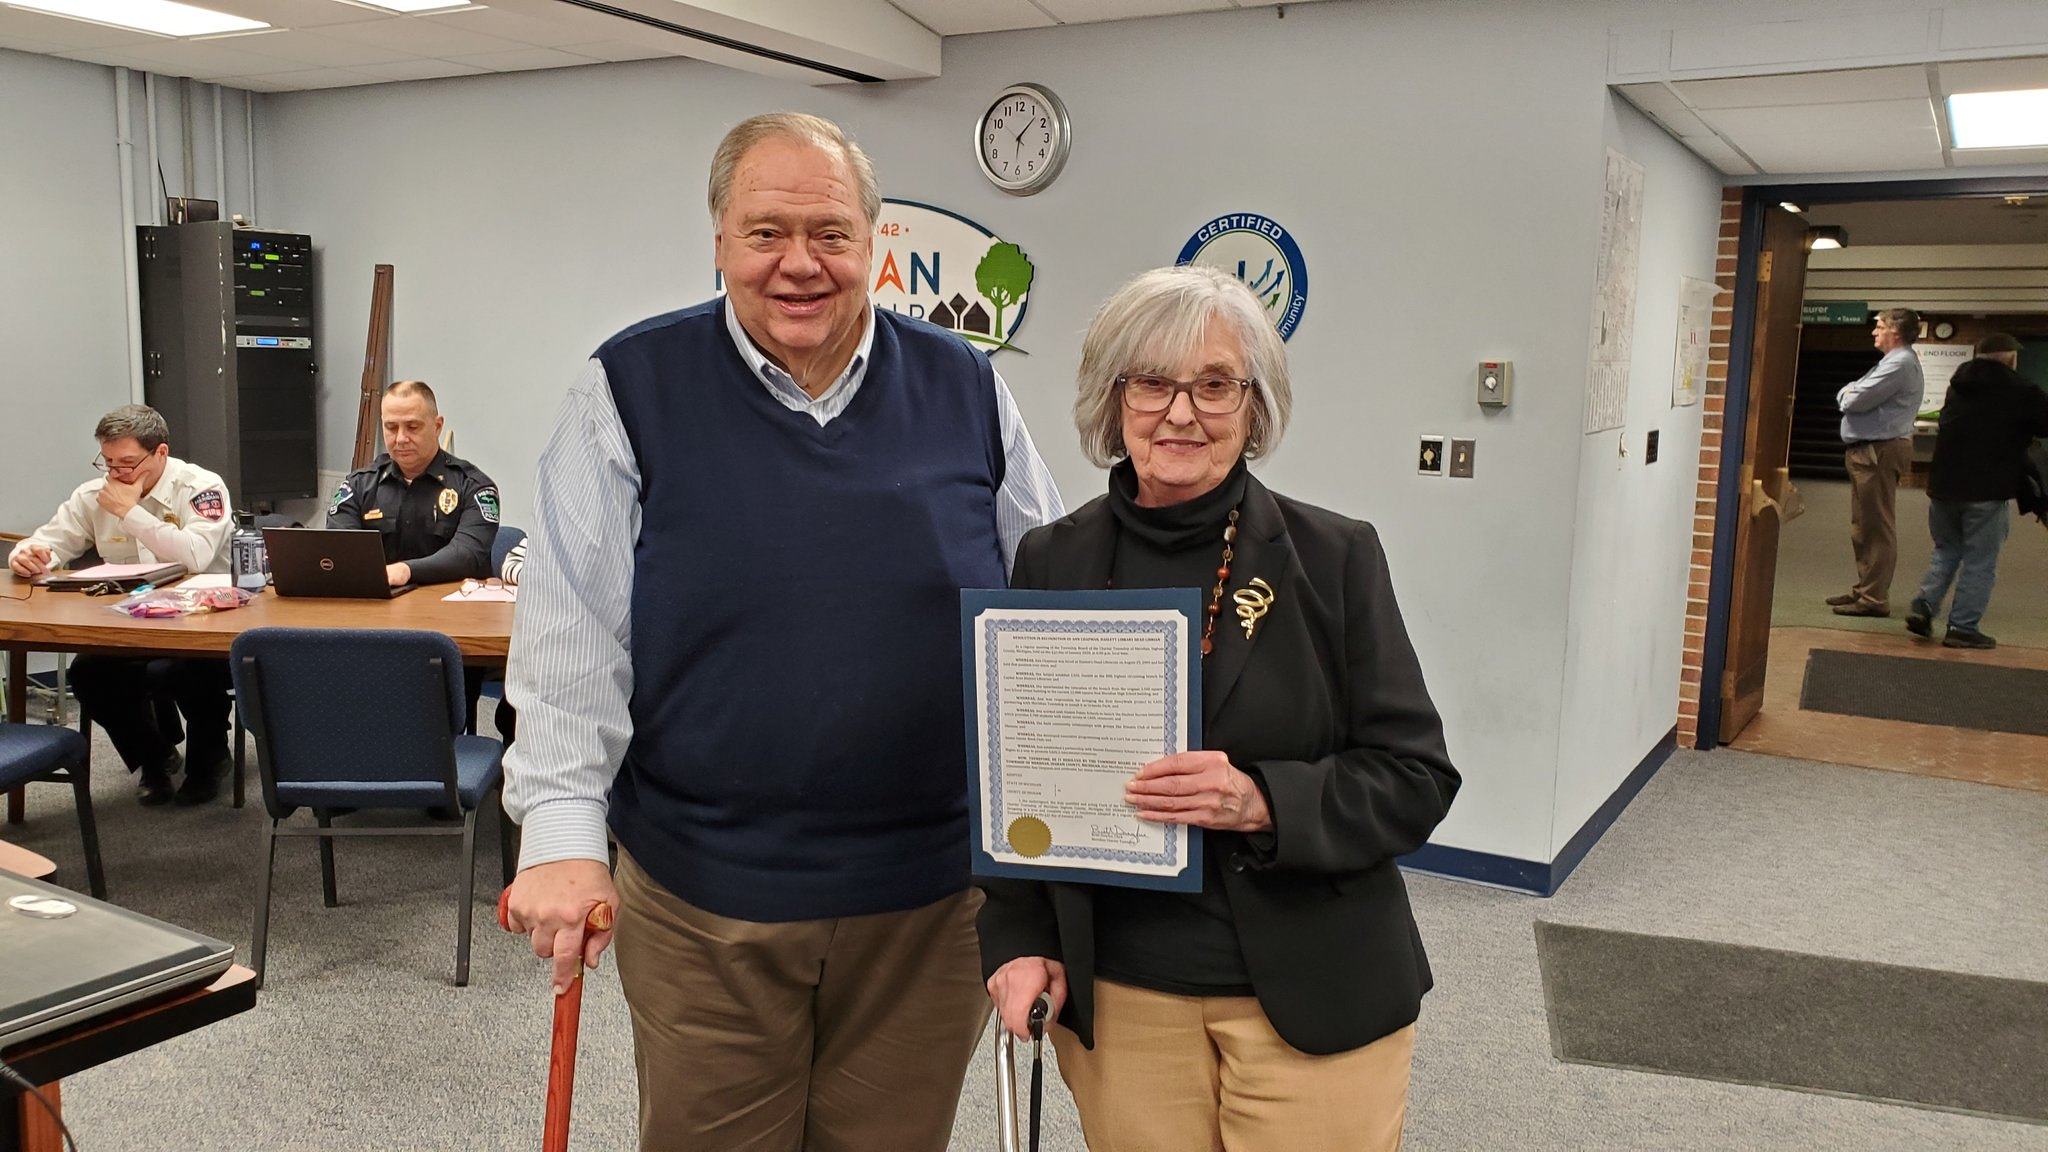 Haslett Library Head Librarian Recognized at Township Board Meeting